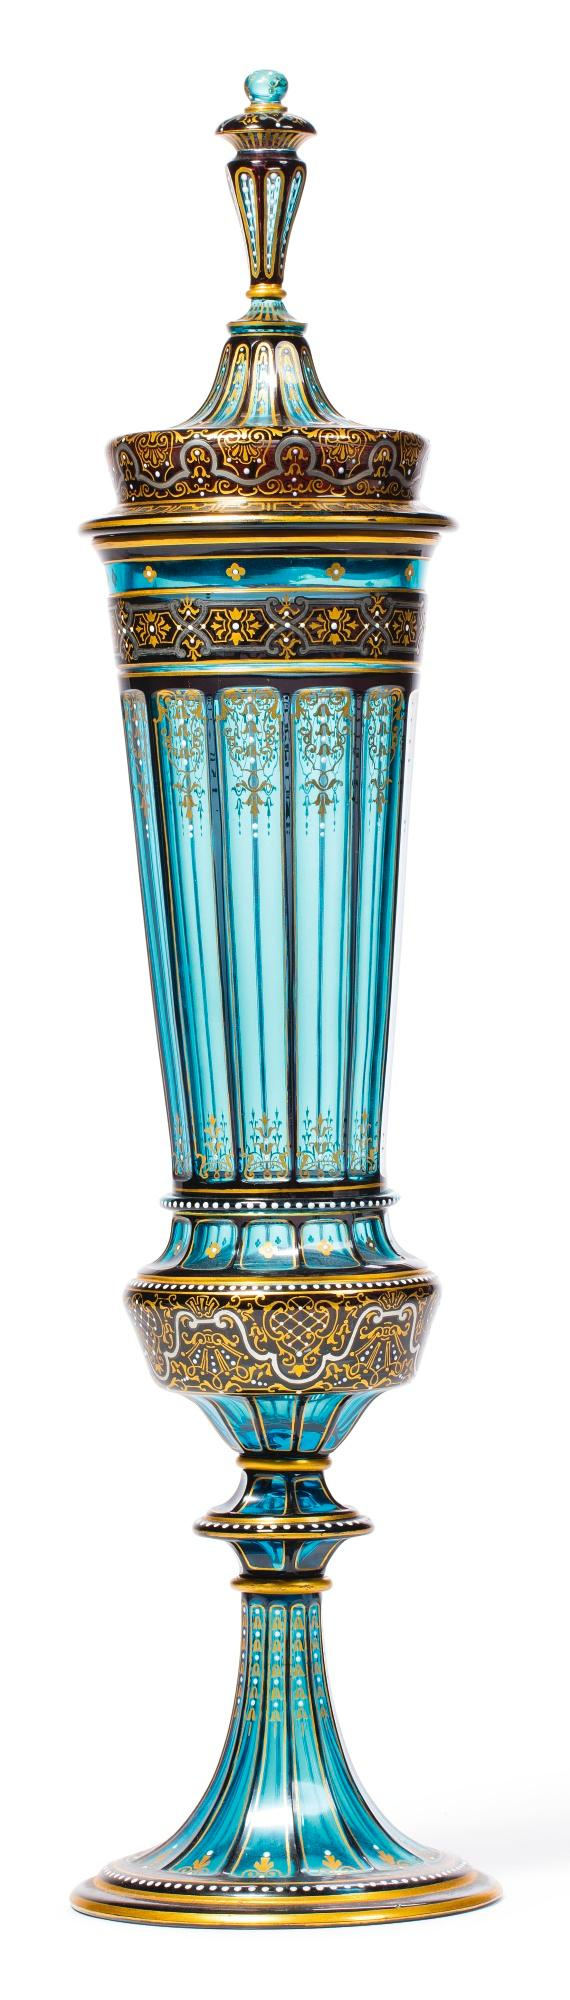 A J. & L. LOBMEYR JEWELLED TURQUOISE GLASS LARGE CUP AND COVER CIRCA 1880 |